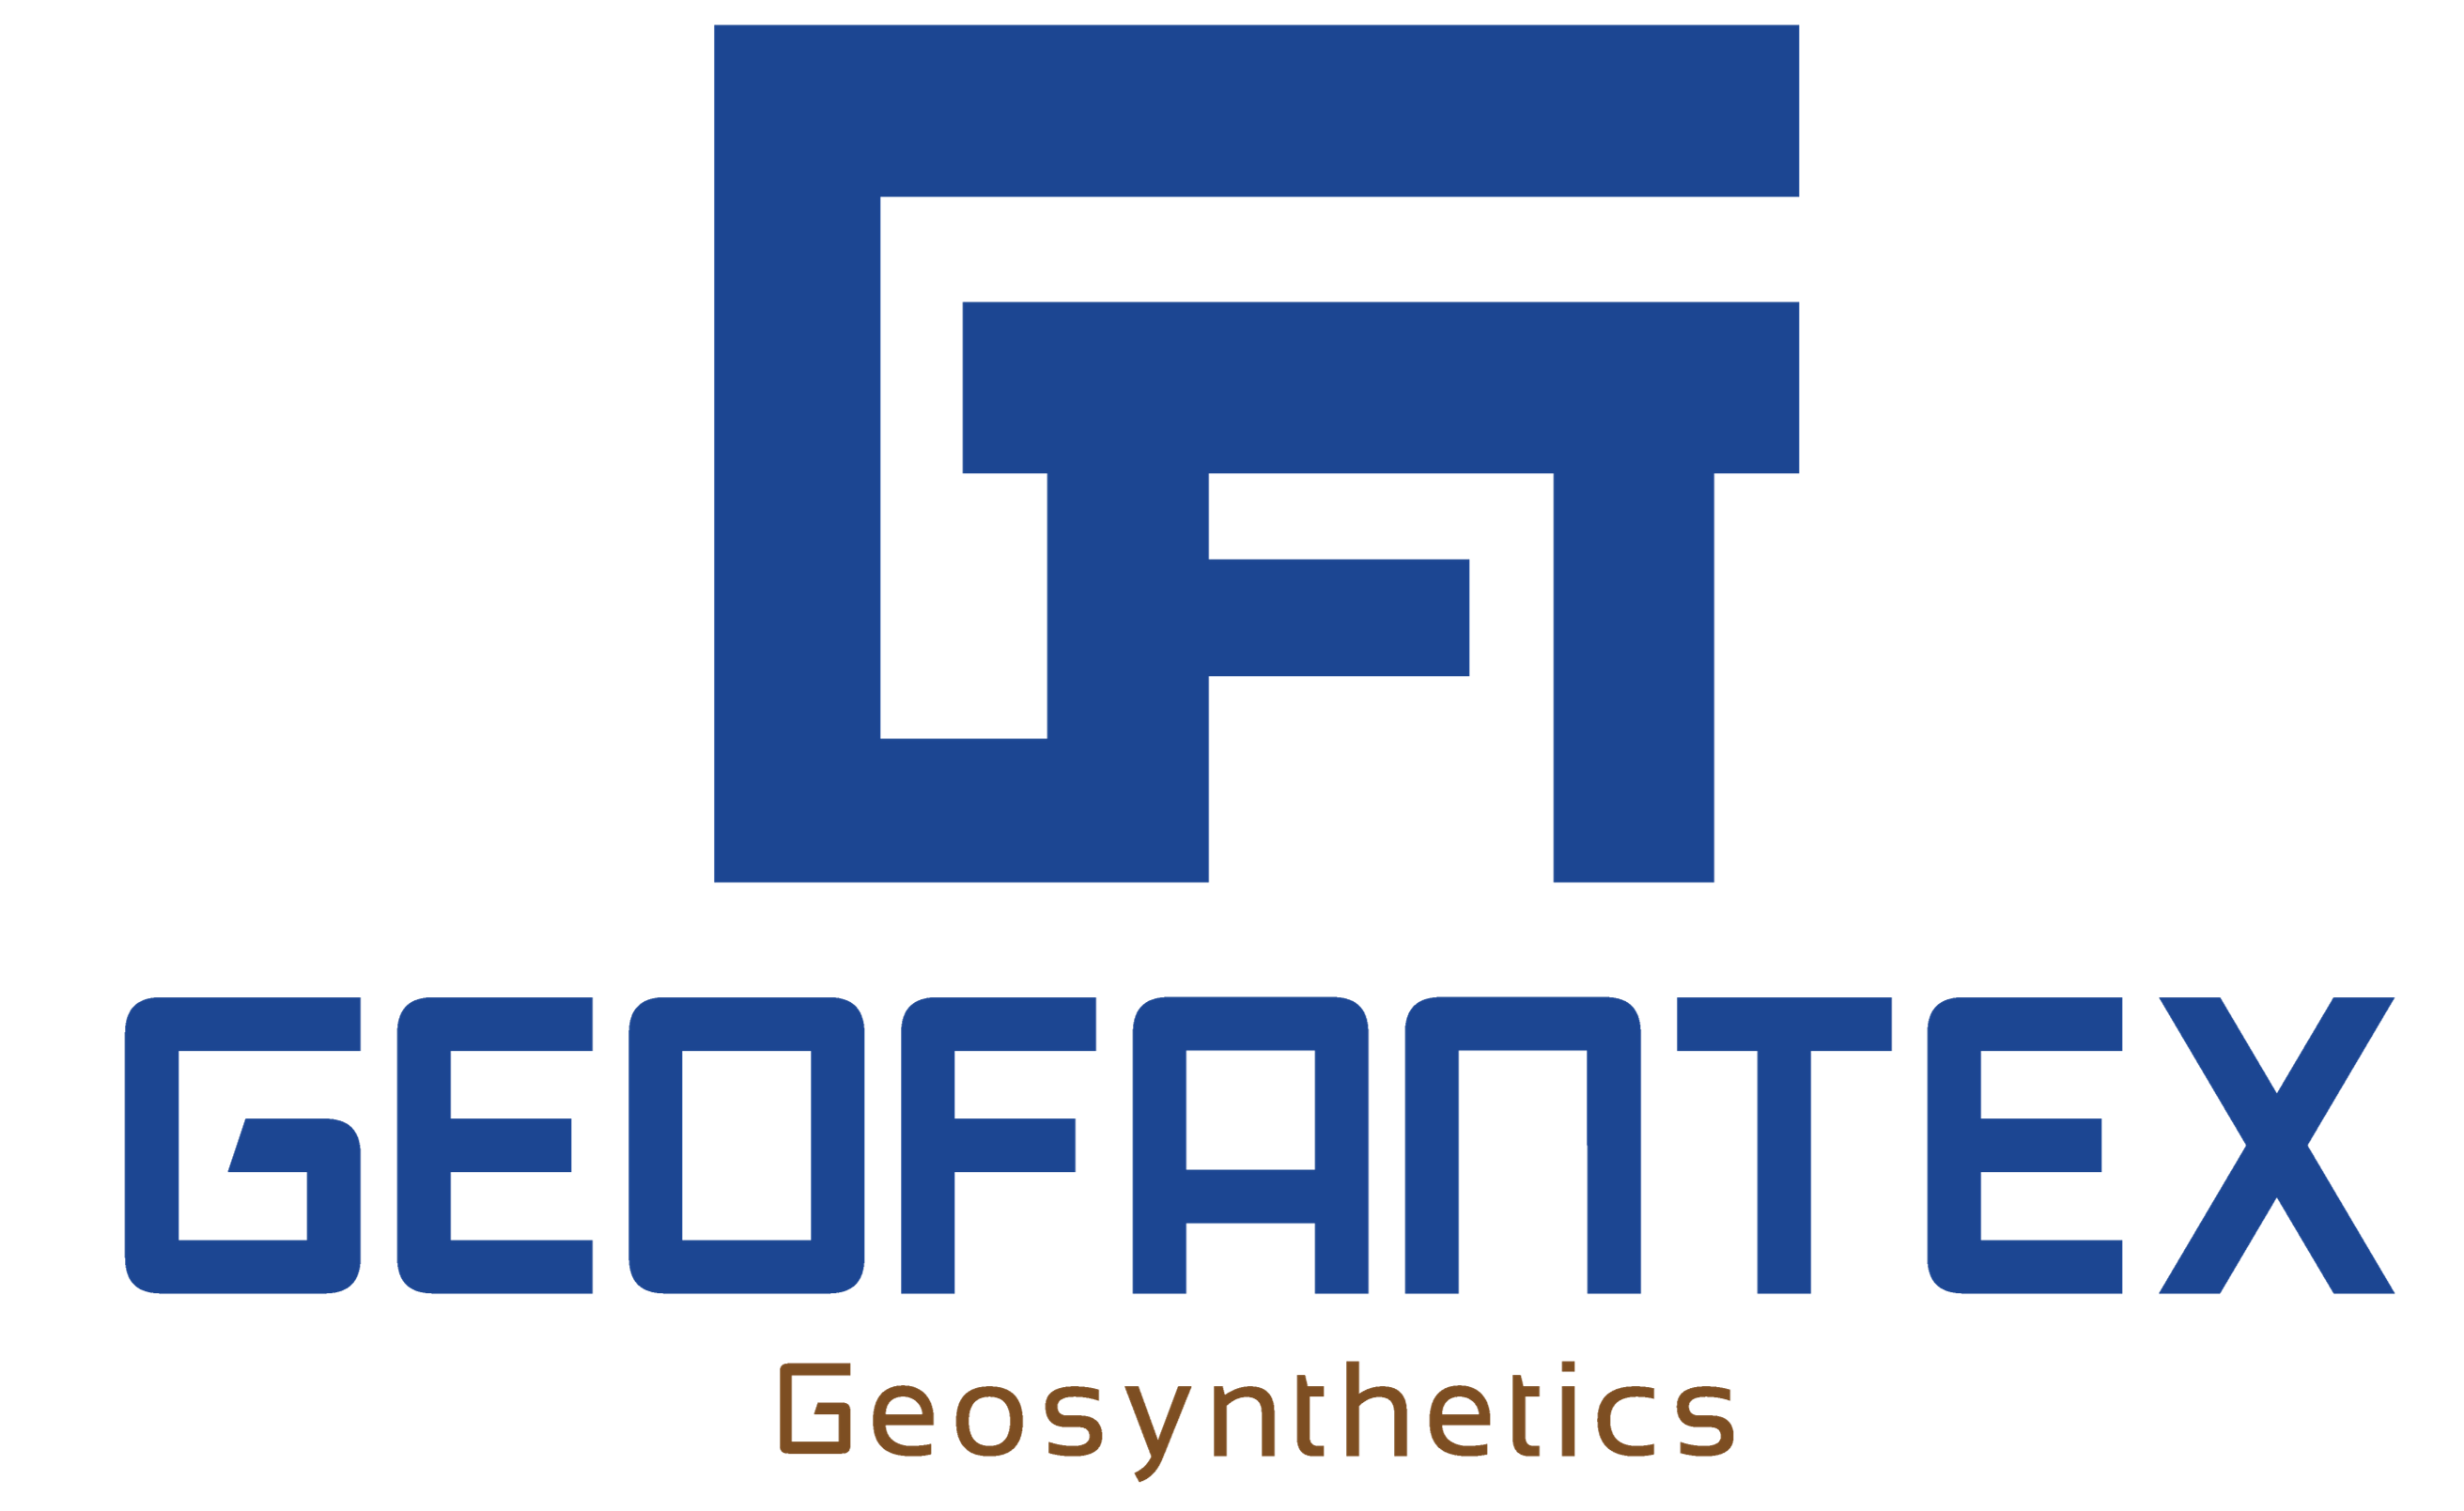 GeofanTex Geosynthetics Co., Ltd.